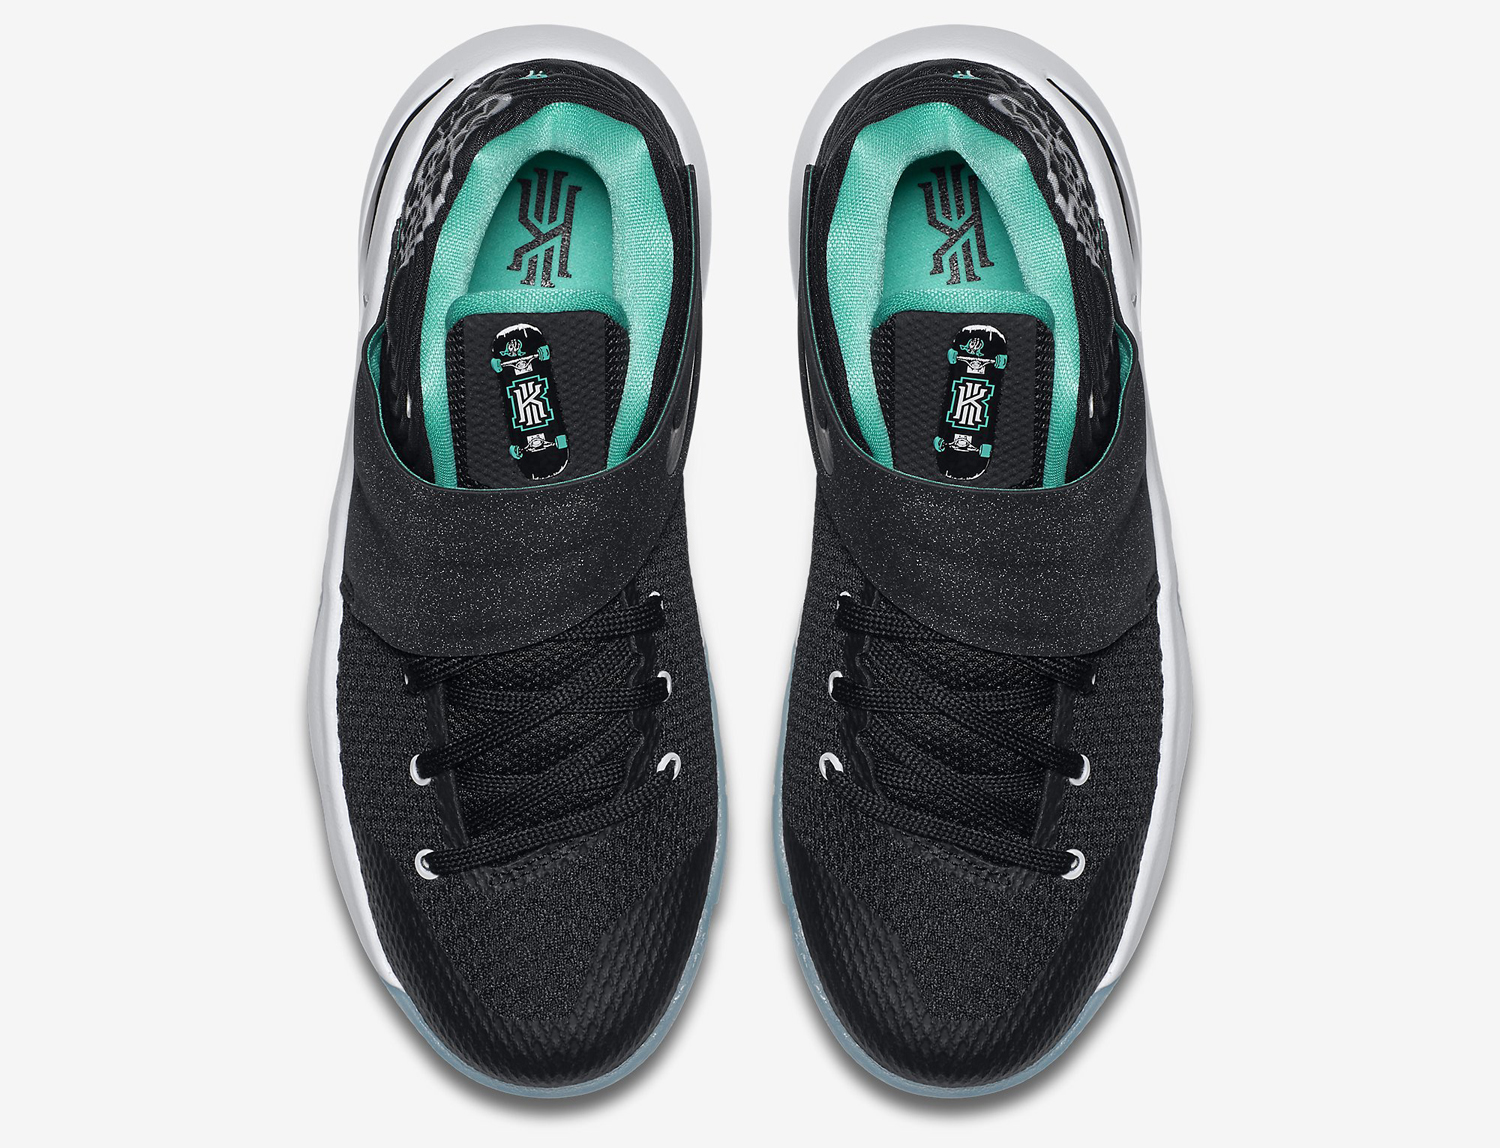 Nike Made Kyrie Irving Shoes for Skateboarders  f9c7ee988